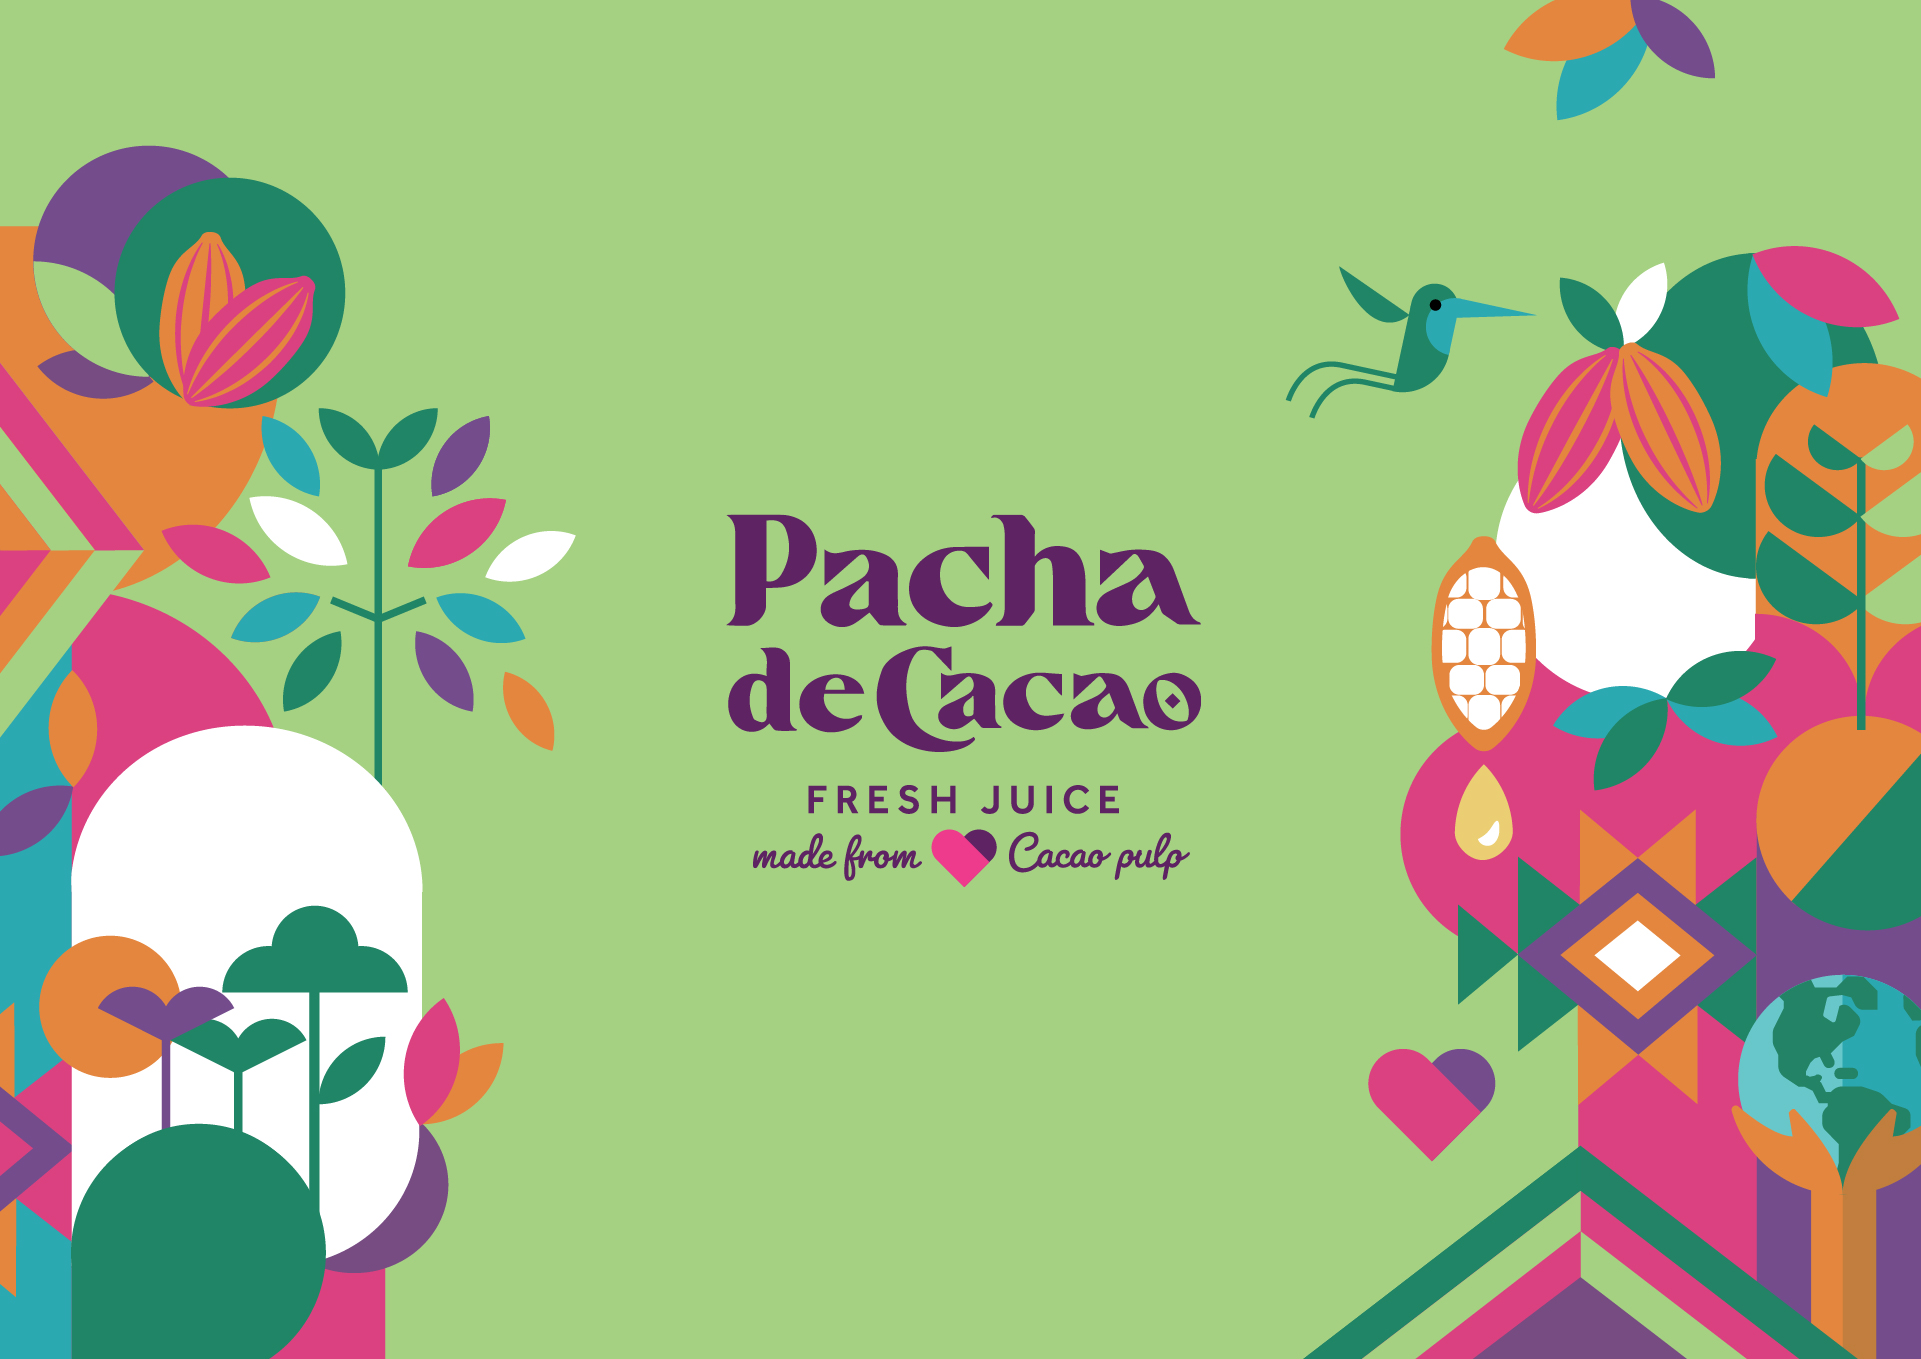 Pacha de Cacao Juice Brand and Packaging Design Created by Positivity Branding